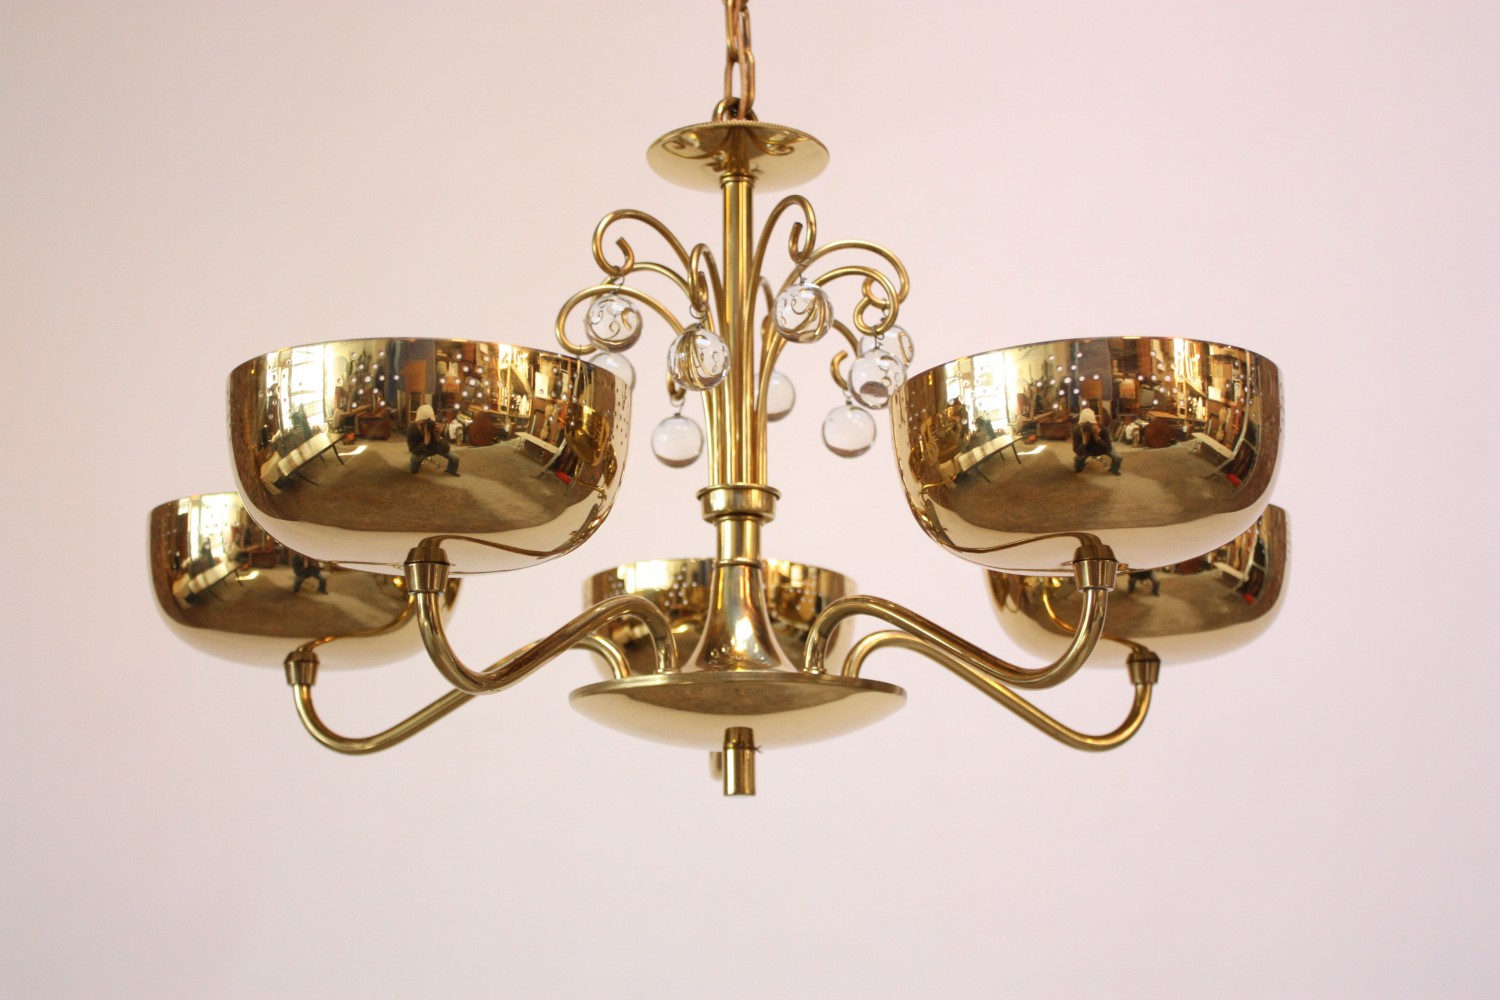 Midcentury Brass Five Fixture Chandelier With Perforated Shades Jarontiques